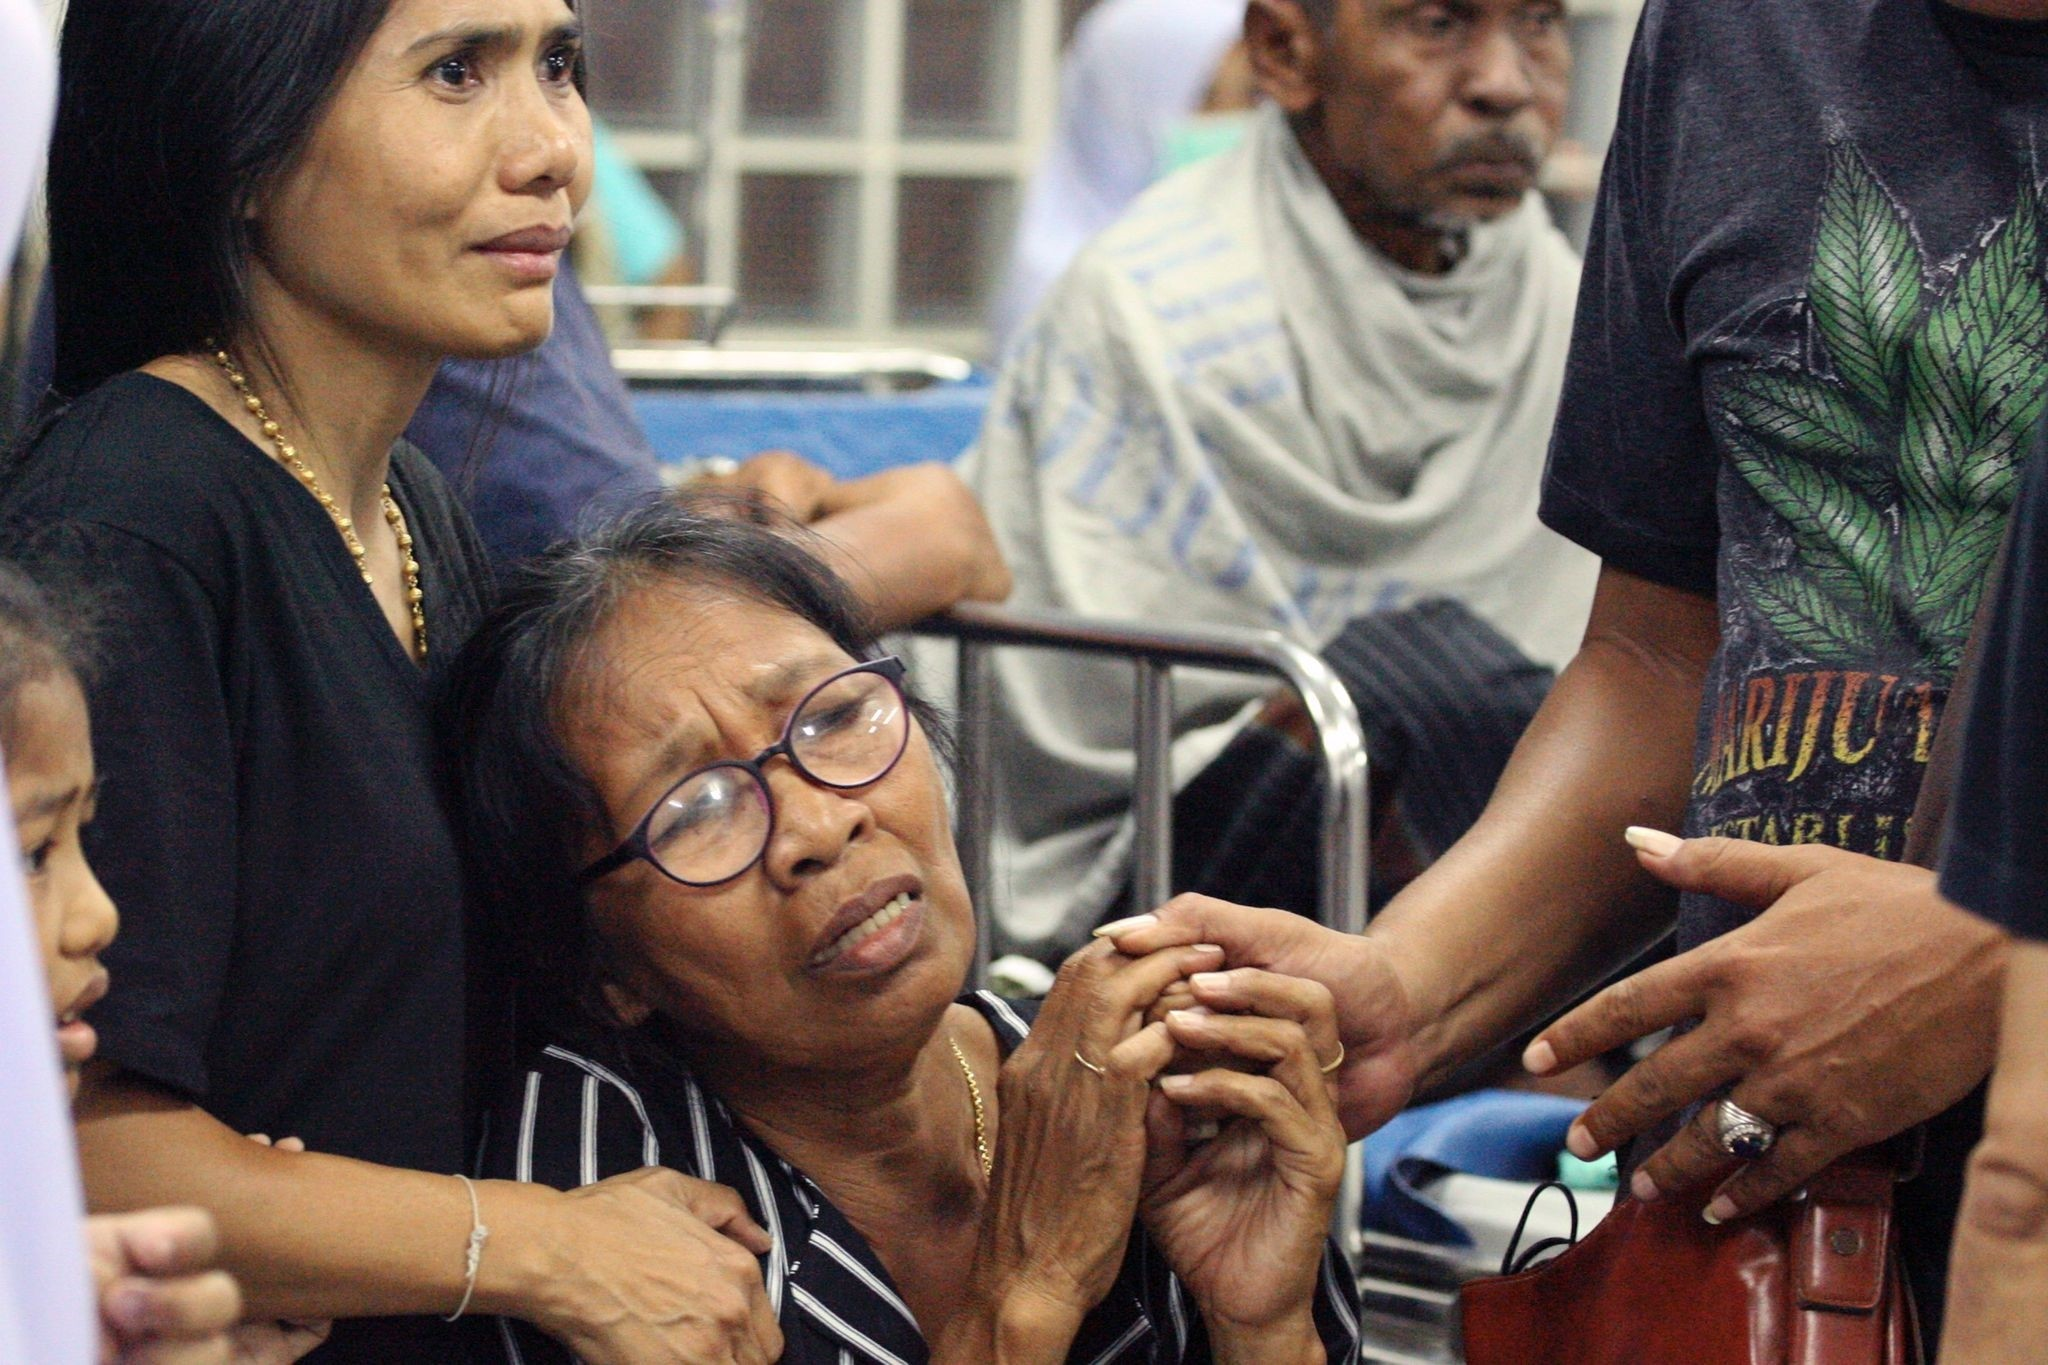 Relatives of a victim injured in a bombing react at a hospital in the southern Thai province of Pattani on October 24, 2016. (AFP Photo)